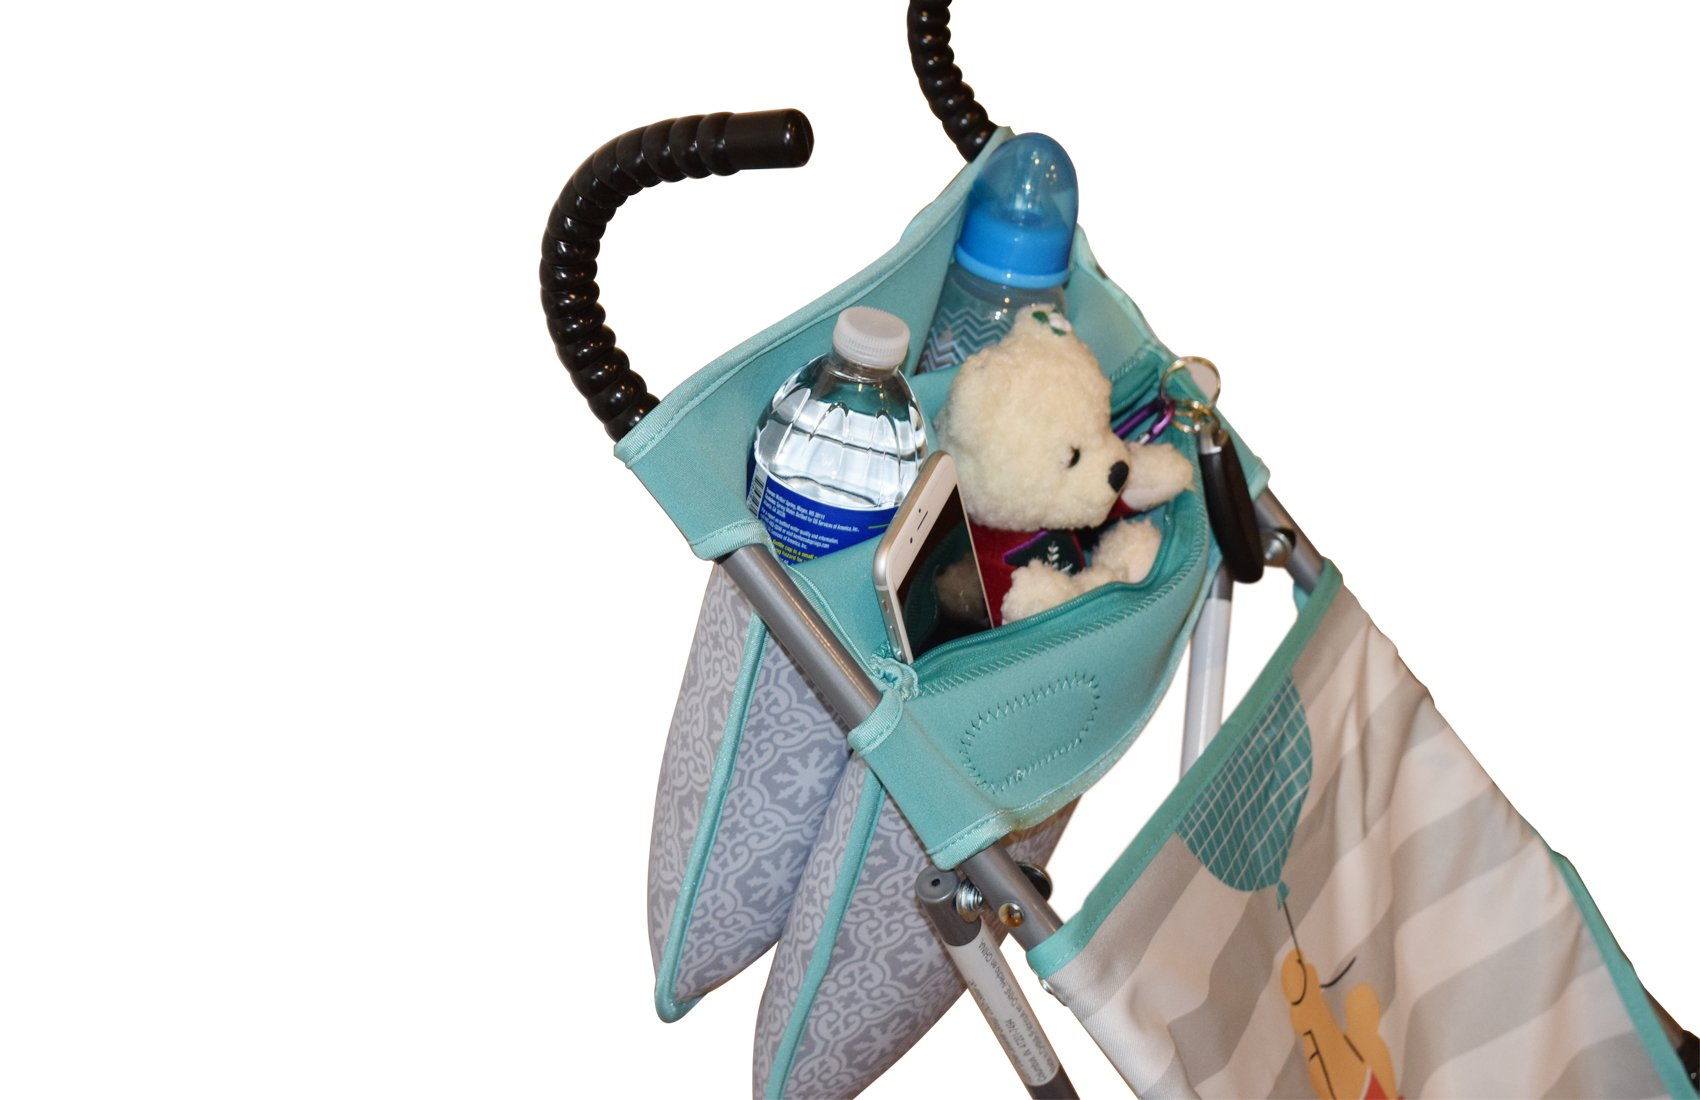 Baby Stroller Caddy Storage Organizer - Cup, Bottle and Diaper Holder for Stroller Accessories Bag - Universal Umbrella Stroller Organizer with Cup Holders - Perfect Baby Shower Gift (Turquoise) by Sunshine Nooks (Image #6)